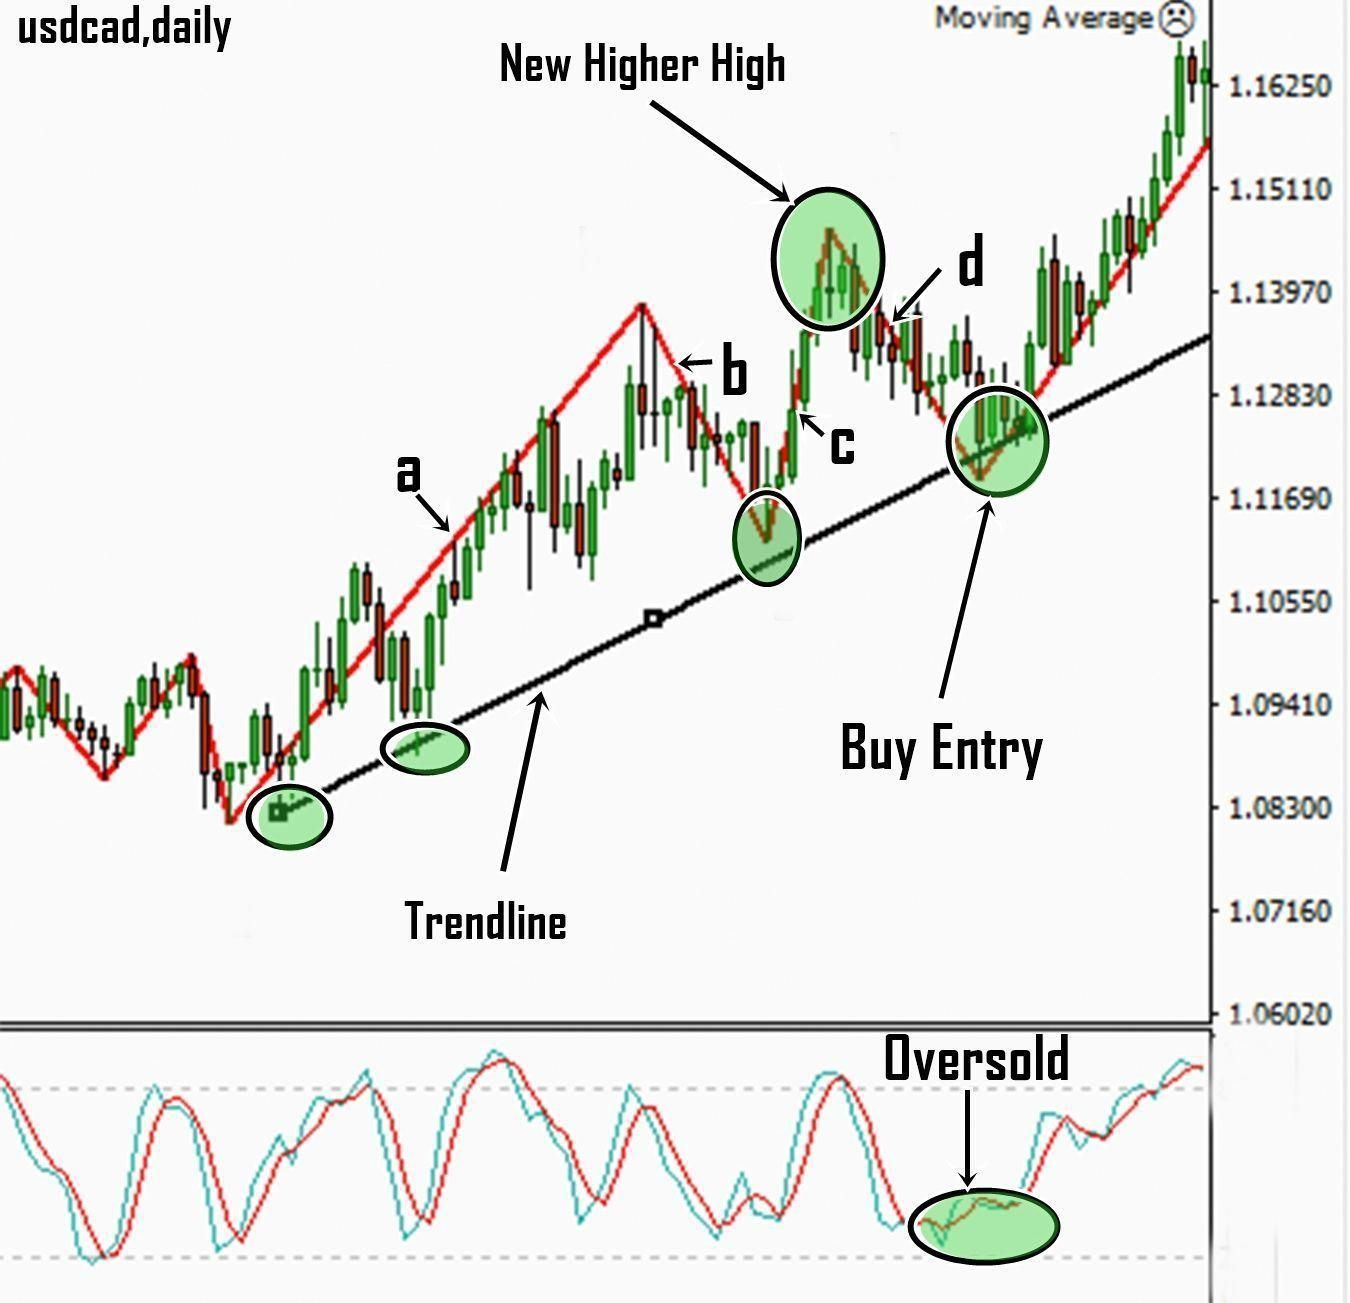 Figure: Advanced zigzag trading strategy using the